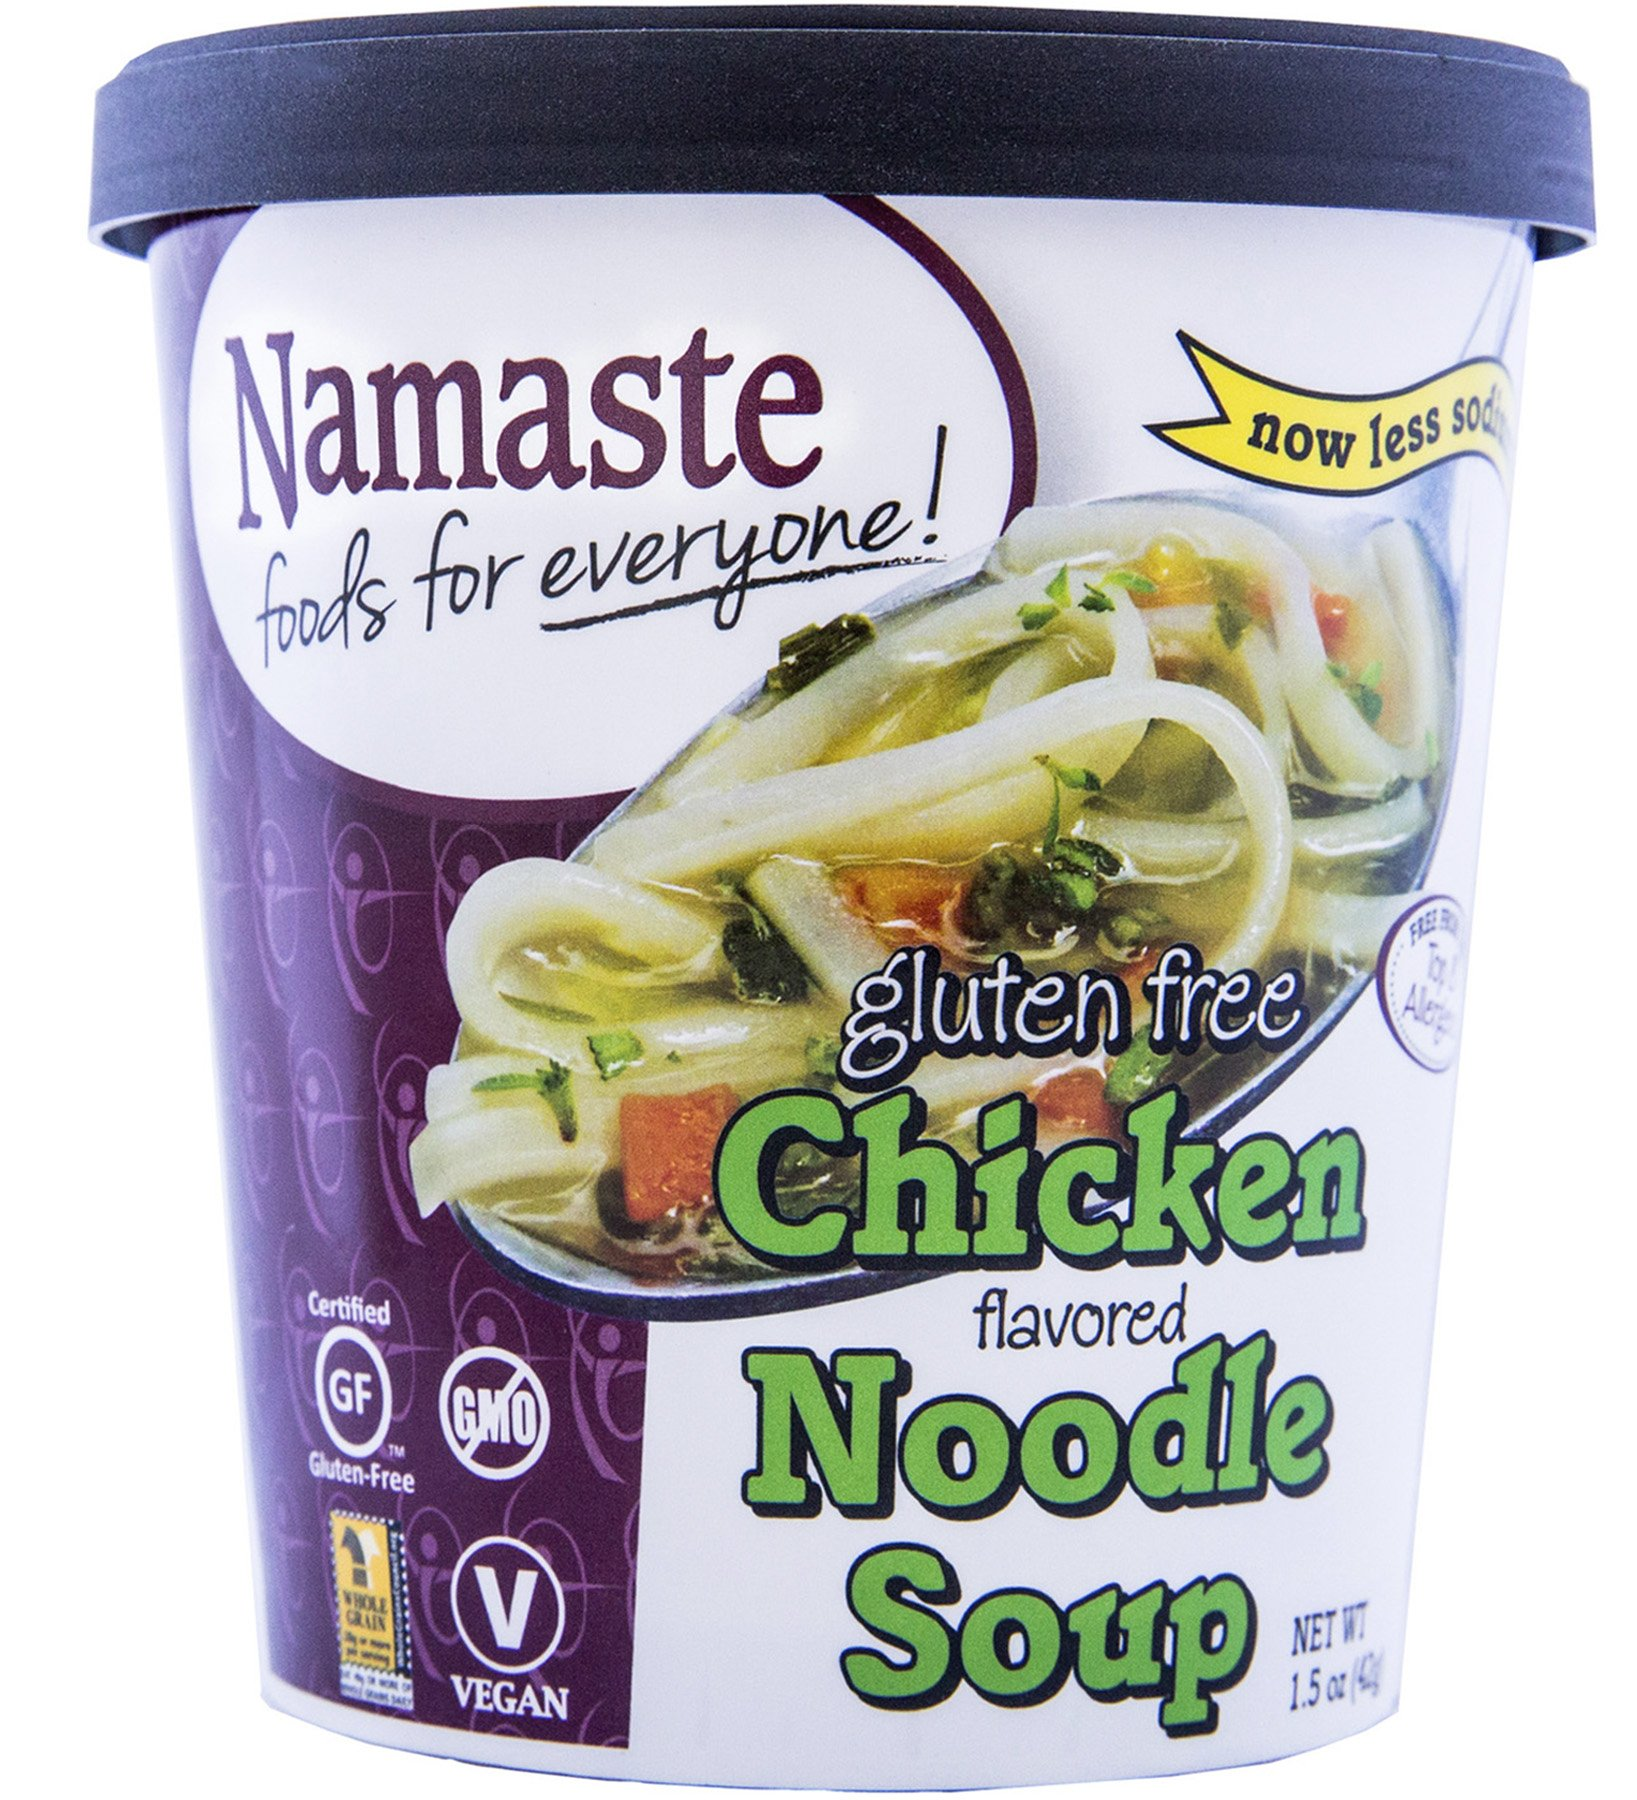 Namaste Foods Gluten Free Chicken Noodle Soup, 1.5 Ounce (Pack of 12) by Namaste Foods